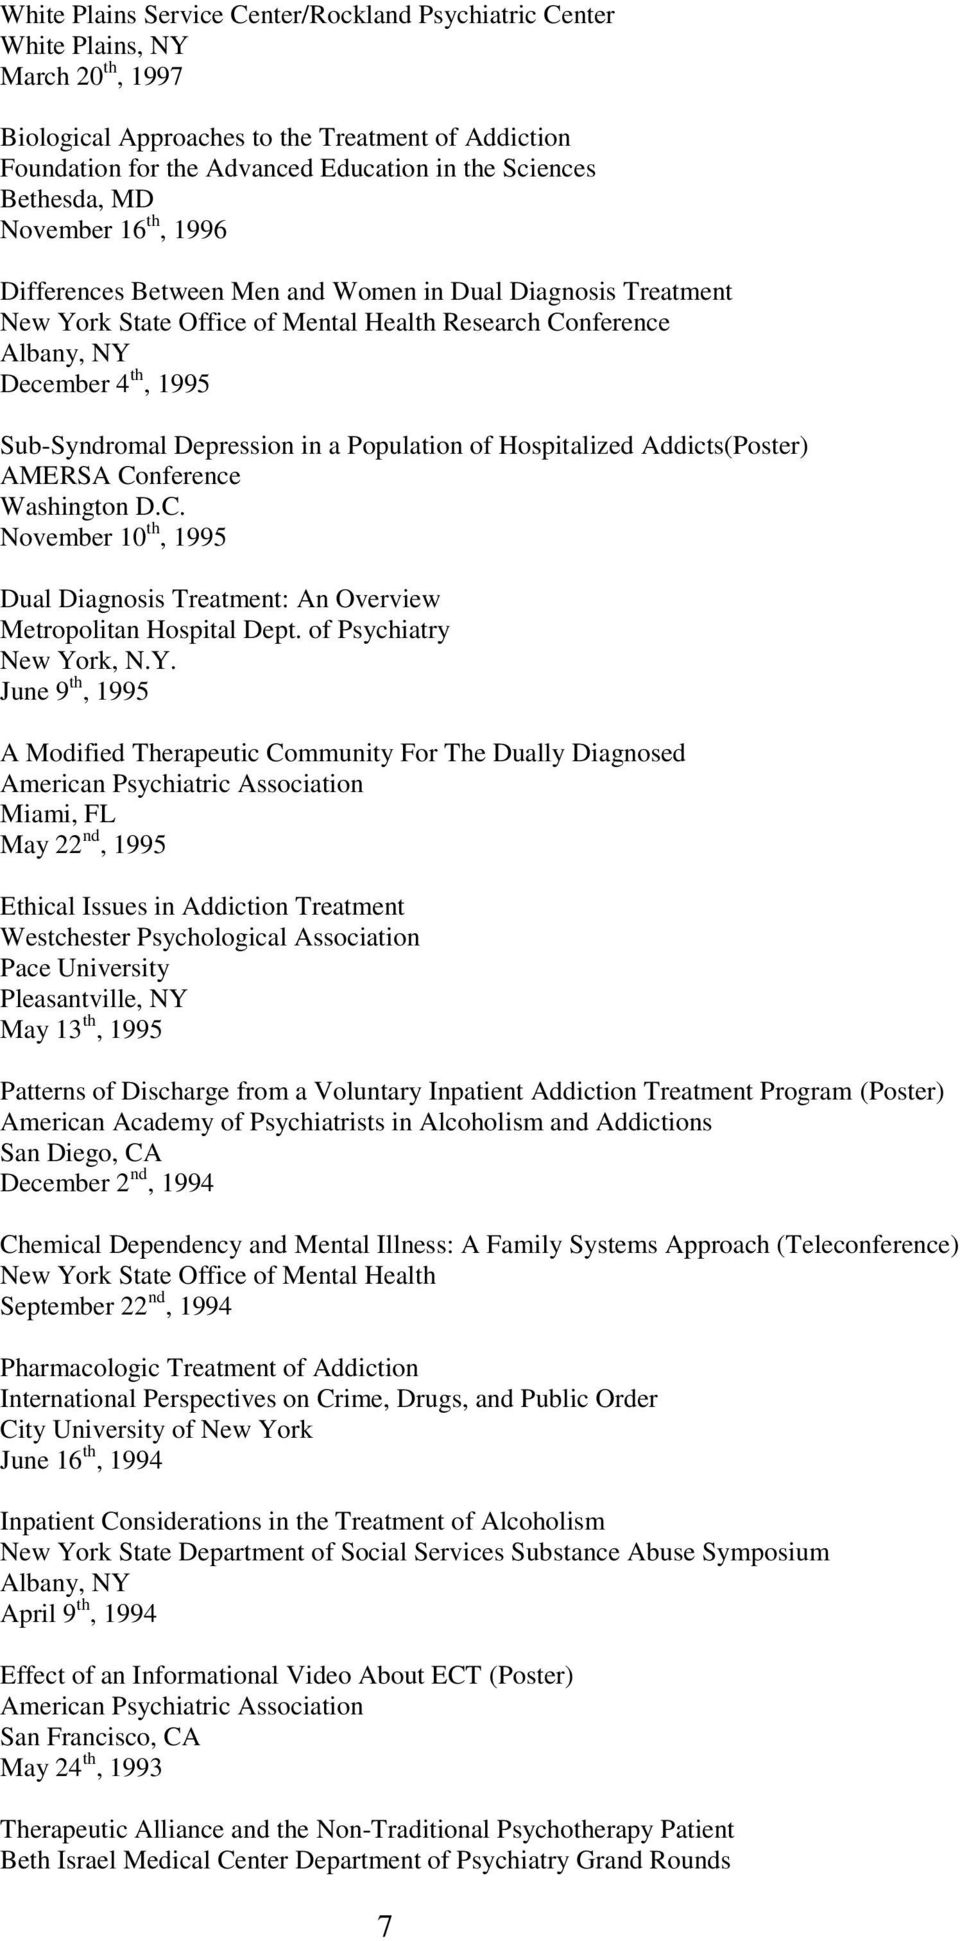 Depression in a Population of Hospitalized Addicts(Poster) AMERSA Conference Washington D.C. November 10 th, 1995 Dual Diagnosis Treatment: An Overview Metropolitan Hospital Dept.